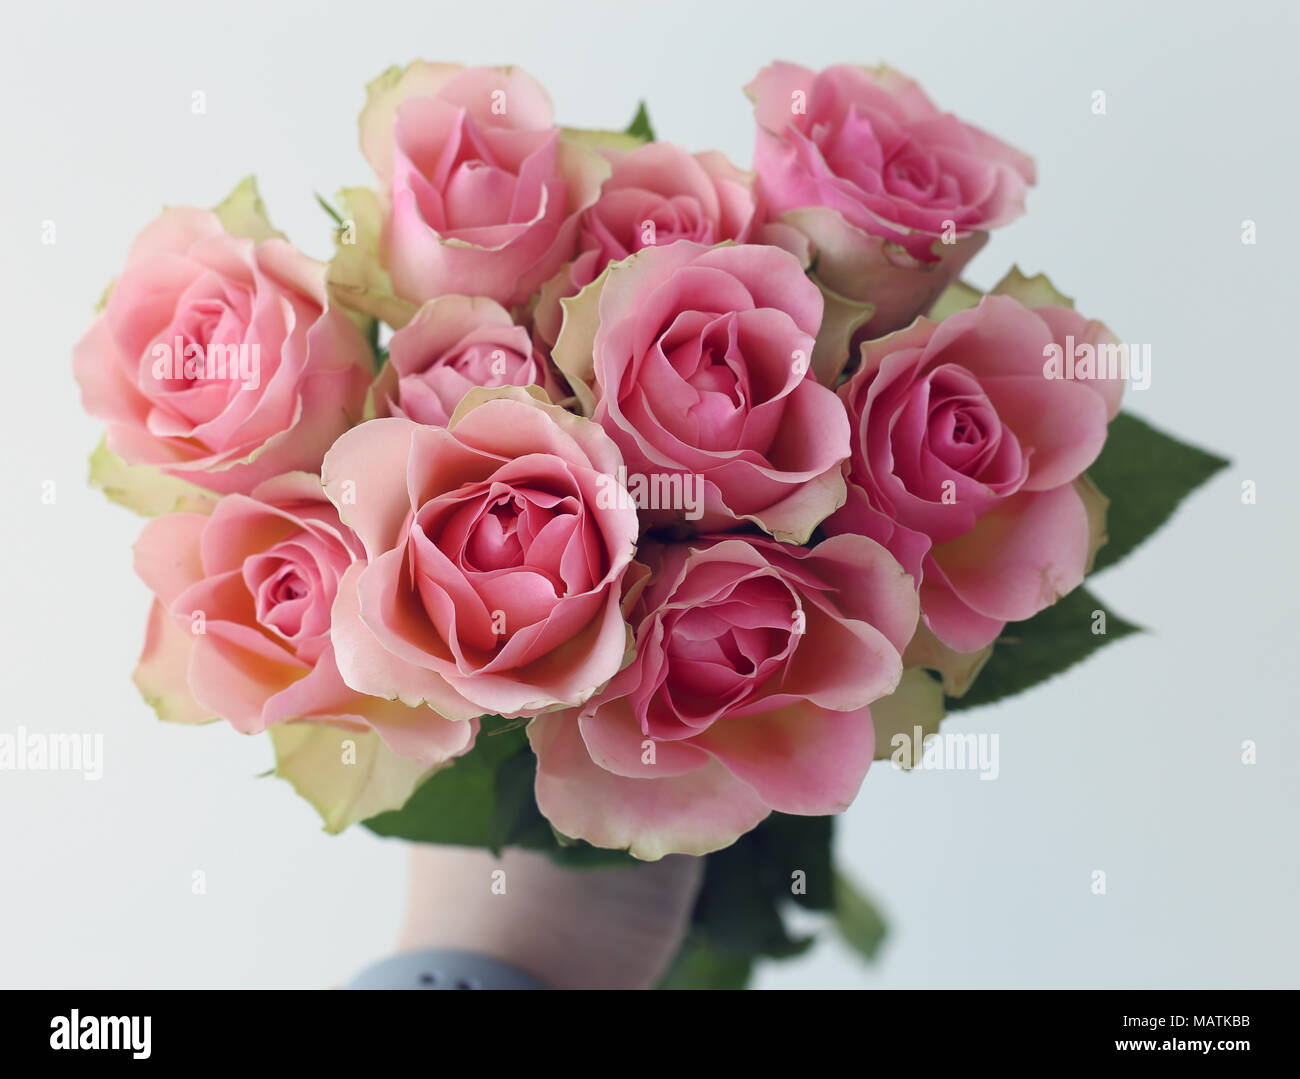 Beautiful pale pink rose on stock photos beautiful pale pink rose a bouquet made of light pink blush colored roses held by a hand of a izmirmasajfo